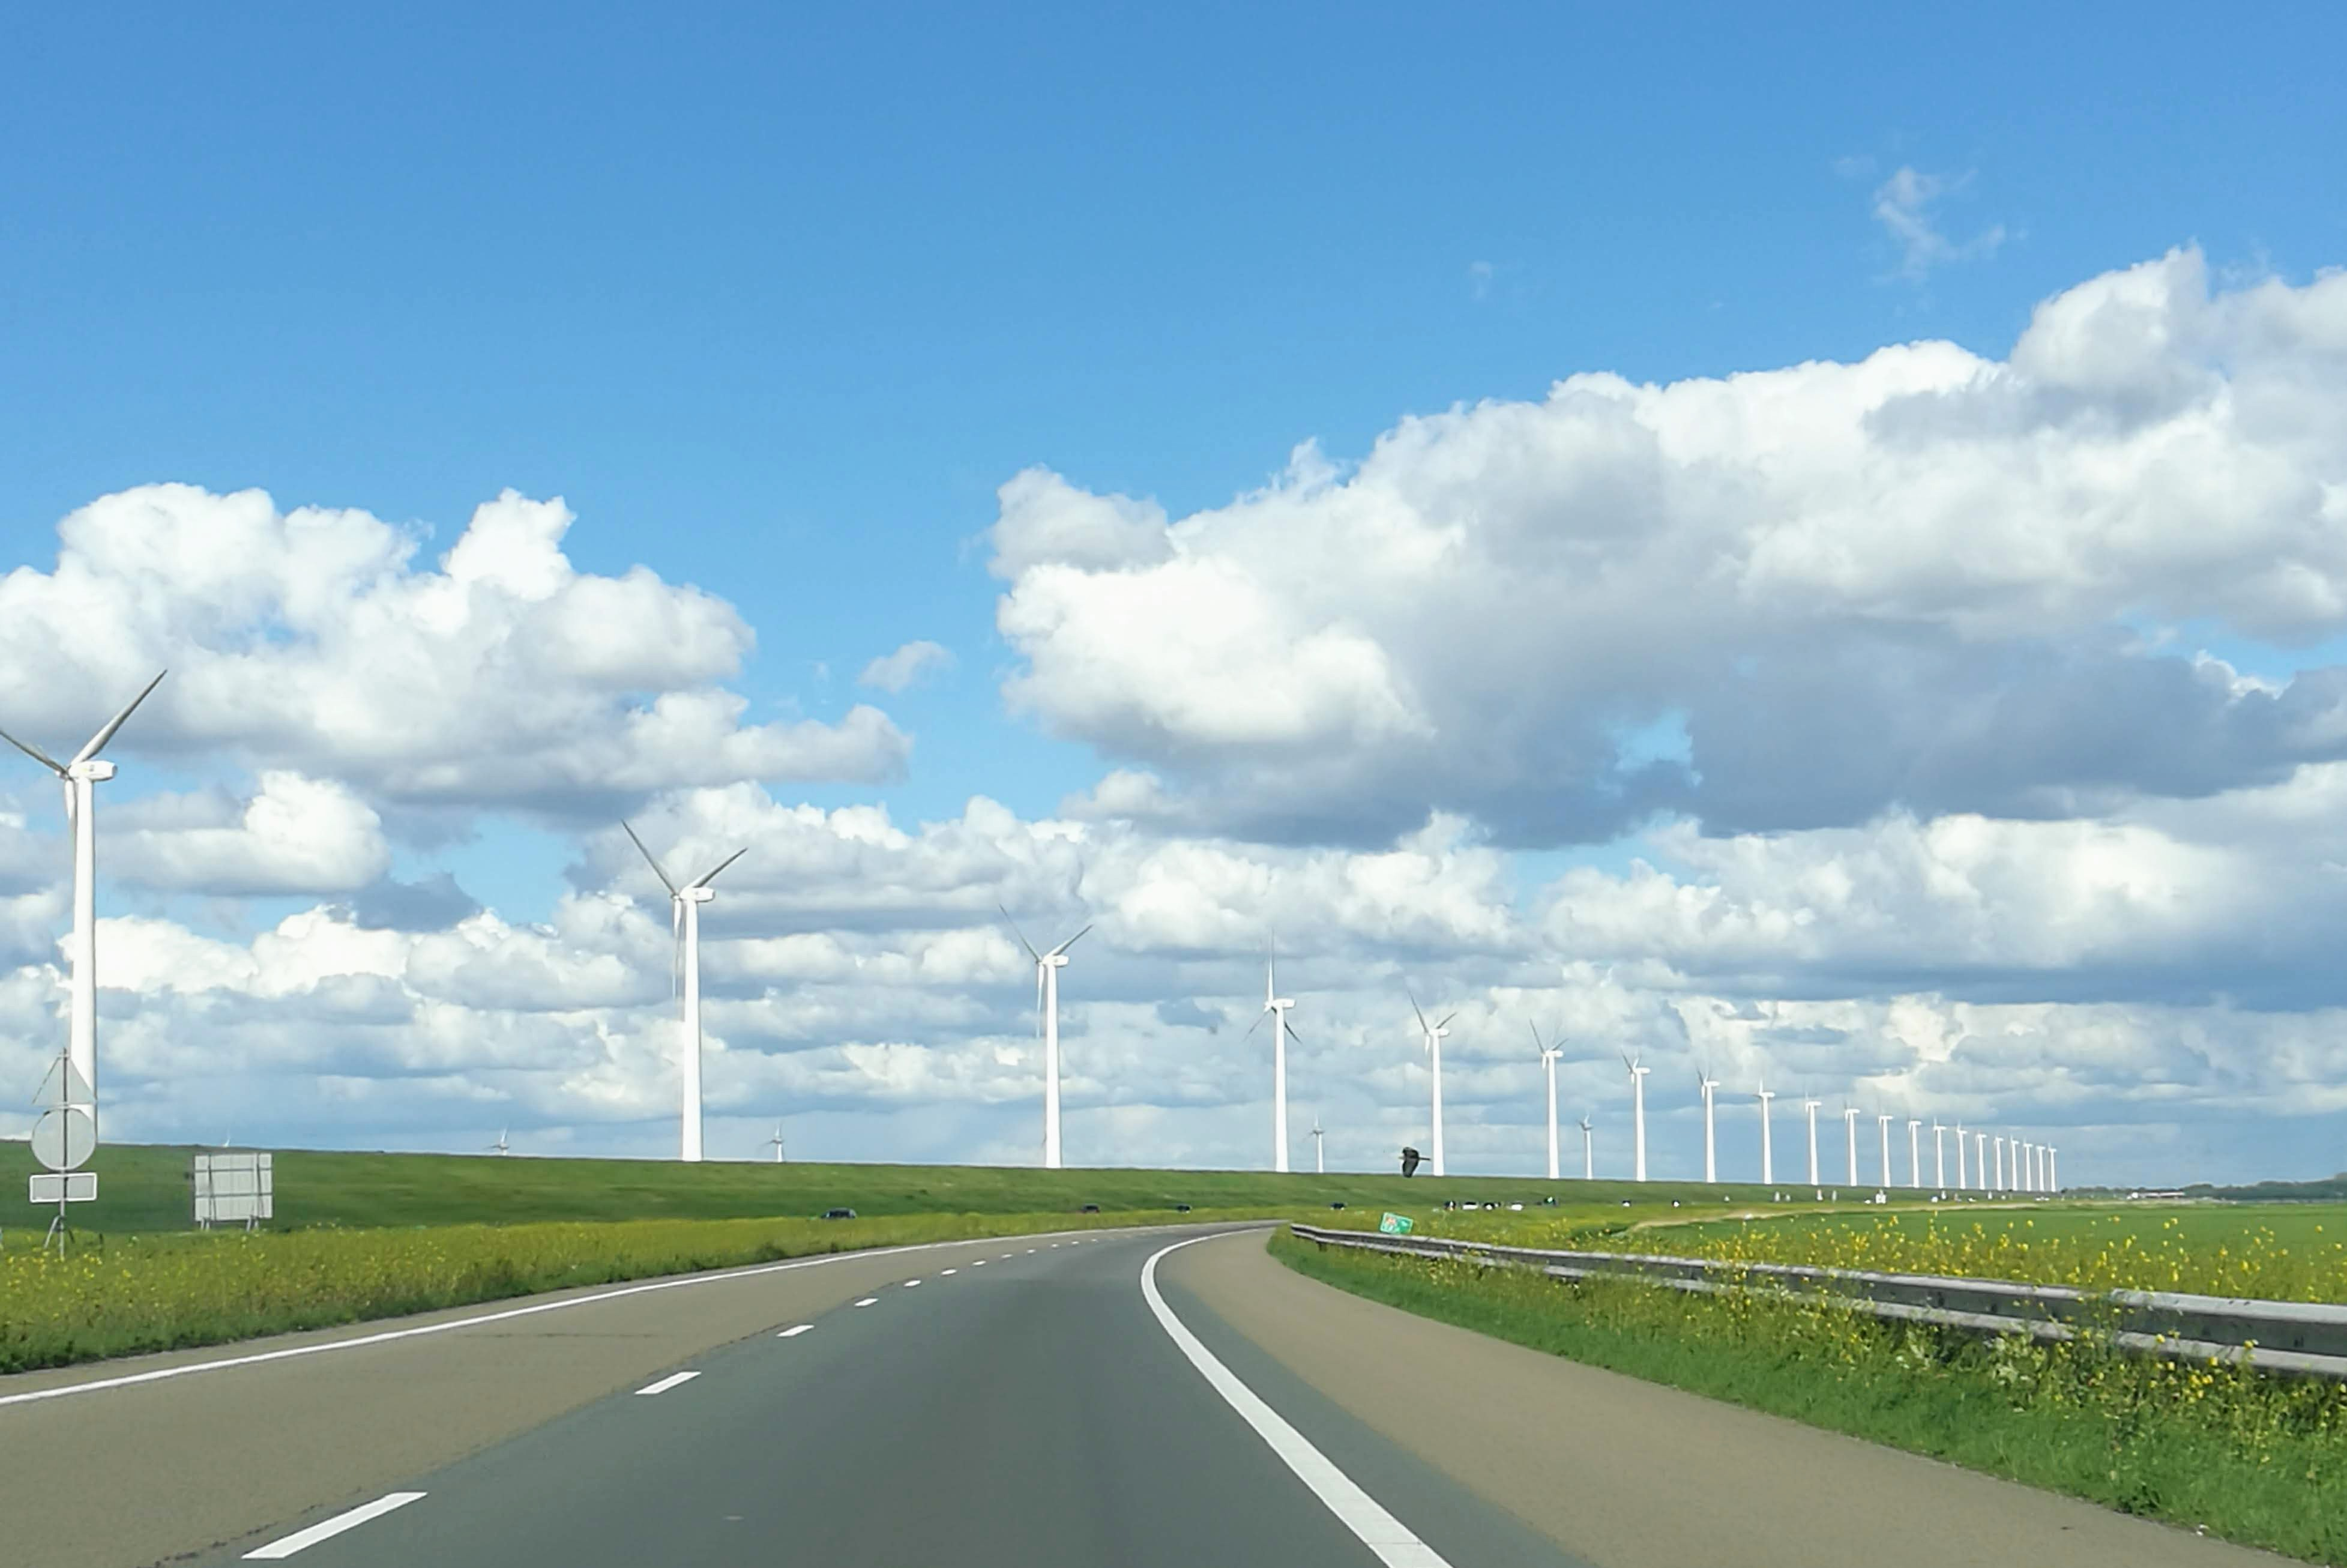 Polder of Flevoland. It shows the modern windmills and great cloud sceneries the area is well known for.